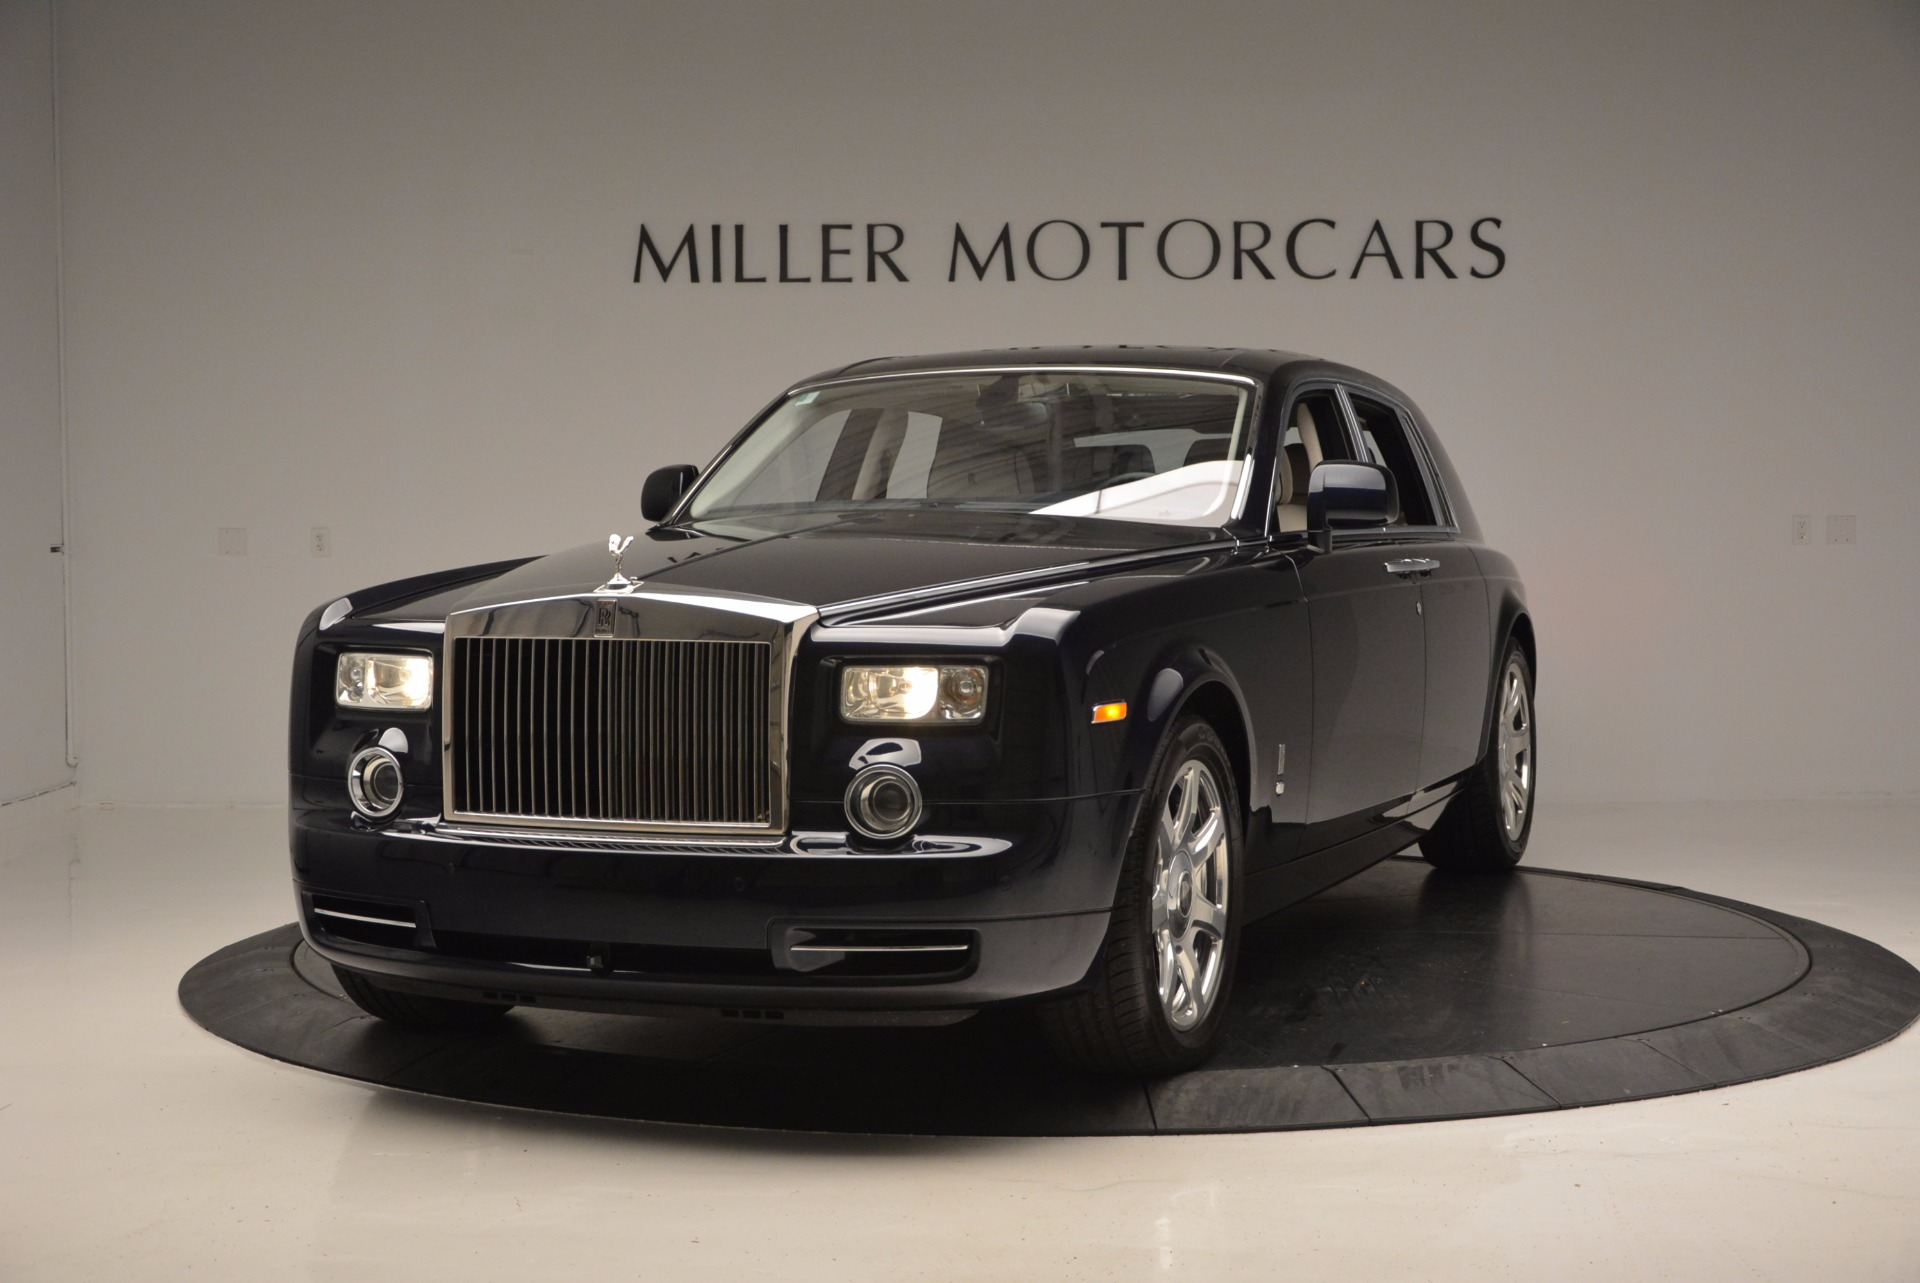 Used 2011 Rolls-Royce Phantom for sale Sold at Bugatti of Greenwich in Greenwich CT 06830 1